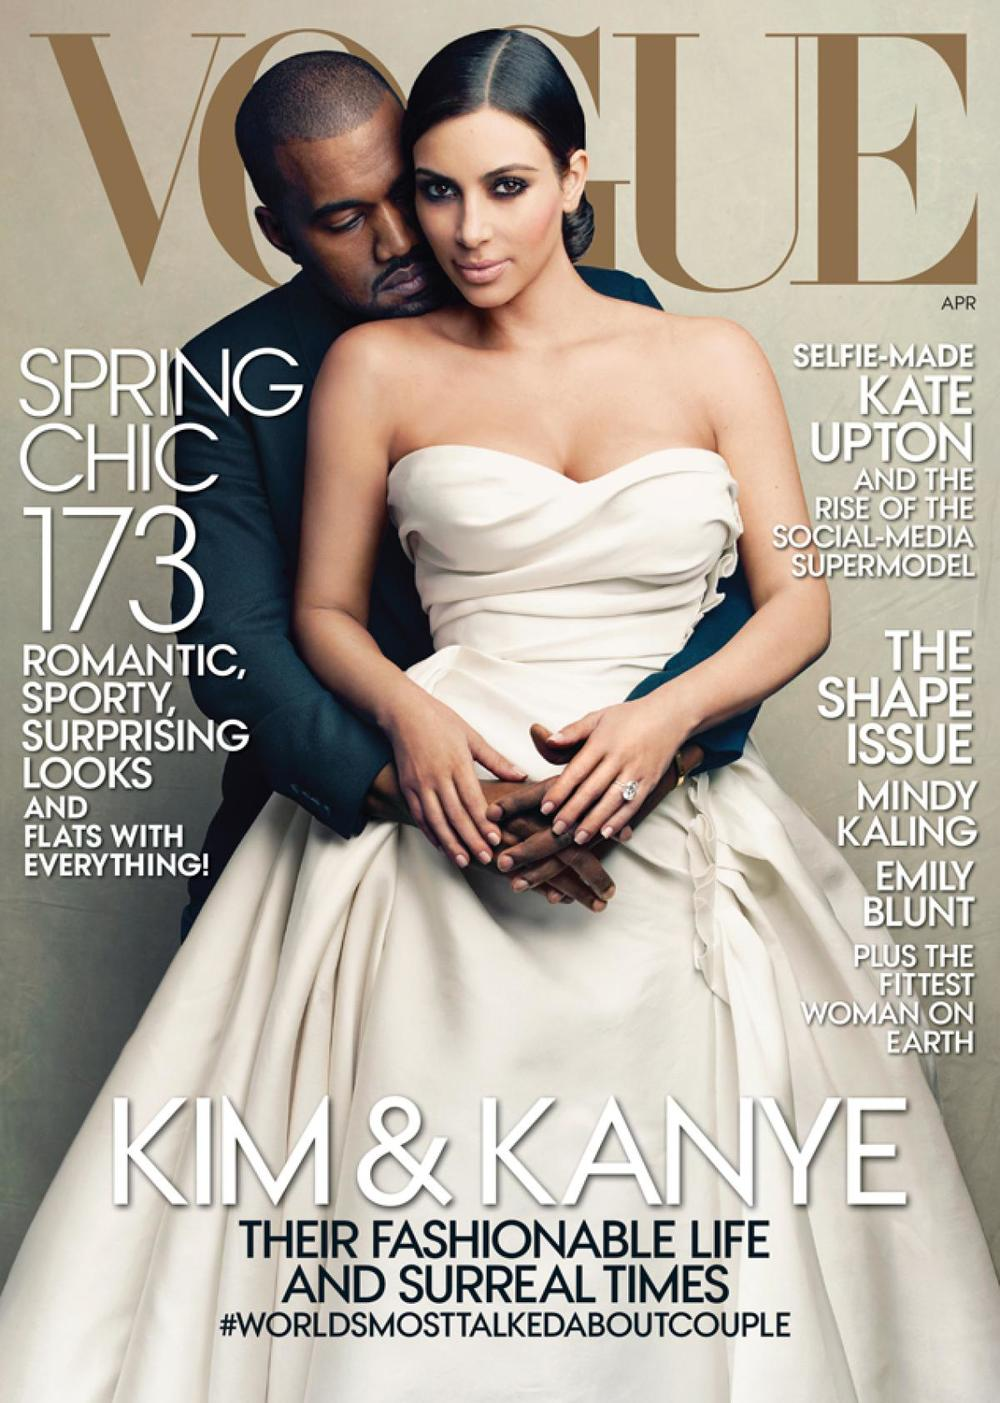 Kim Kardashian and Kanye West grace Vogue's April 2014 Issue - Image Source: Vogue